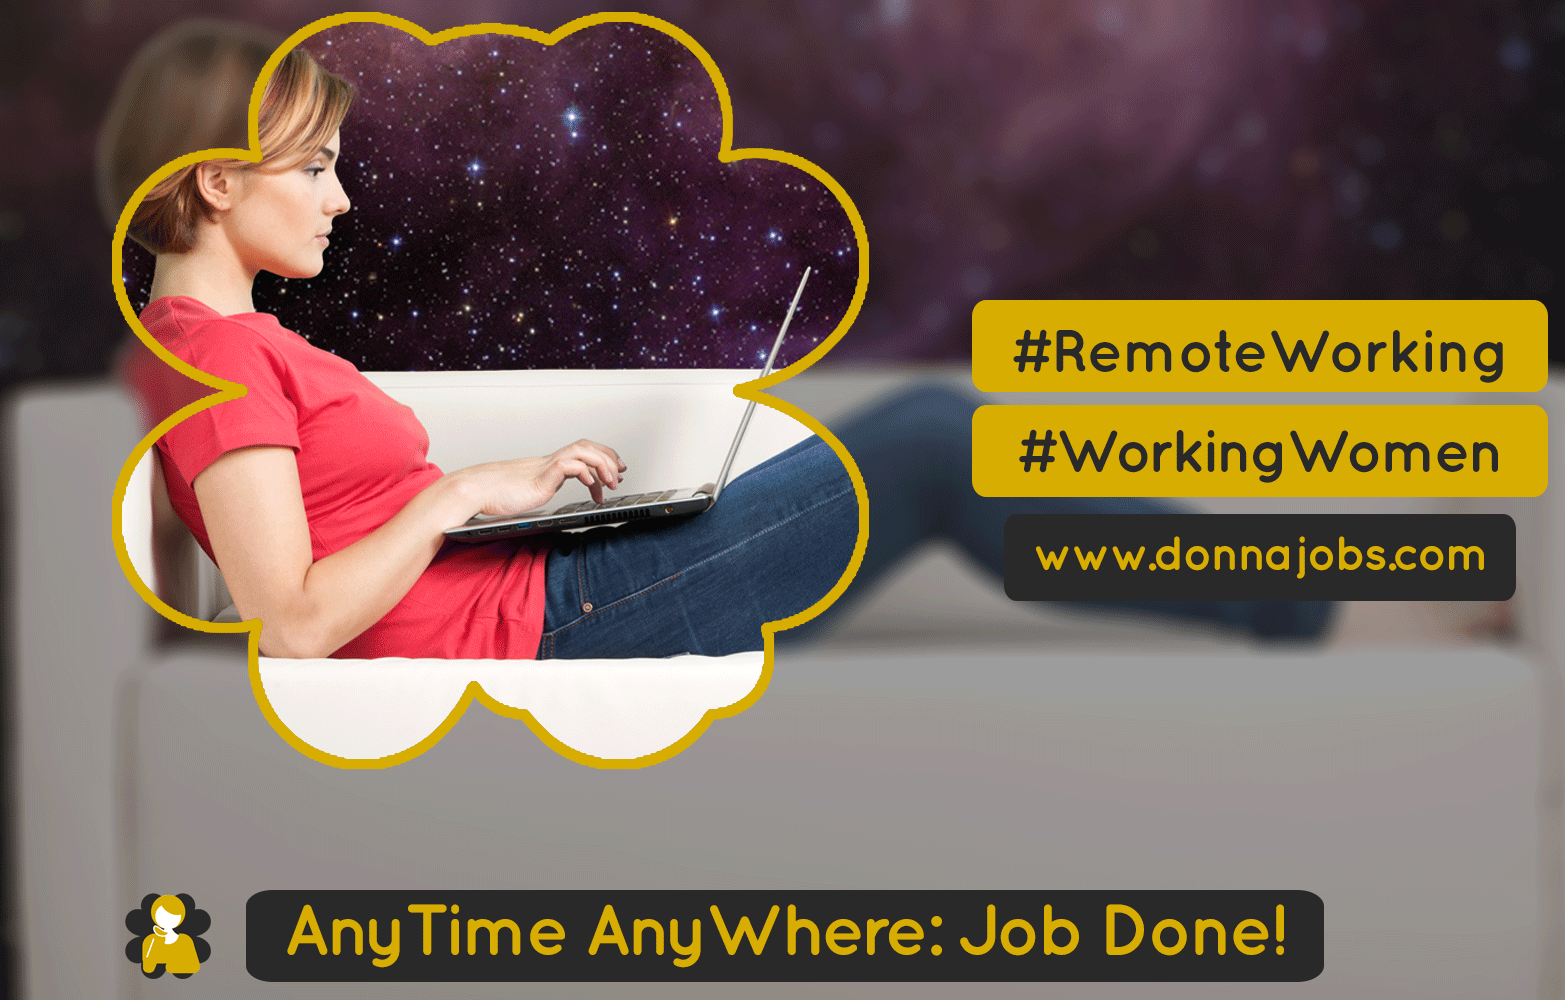 DonnaJobs AnyTime AnyWhere Job Done